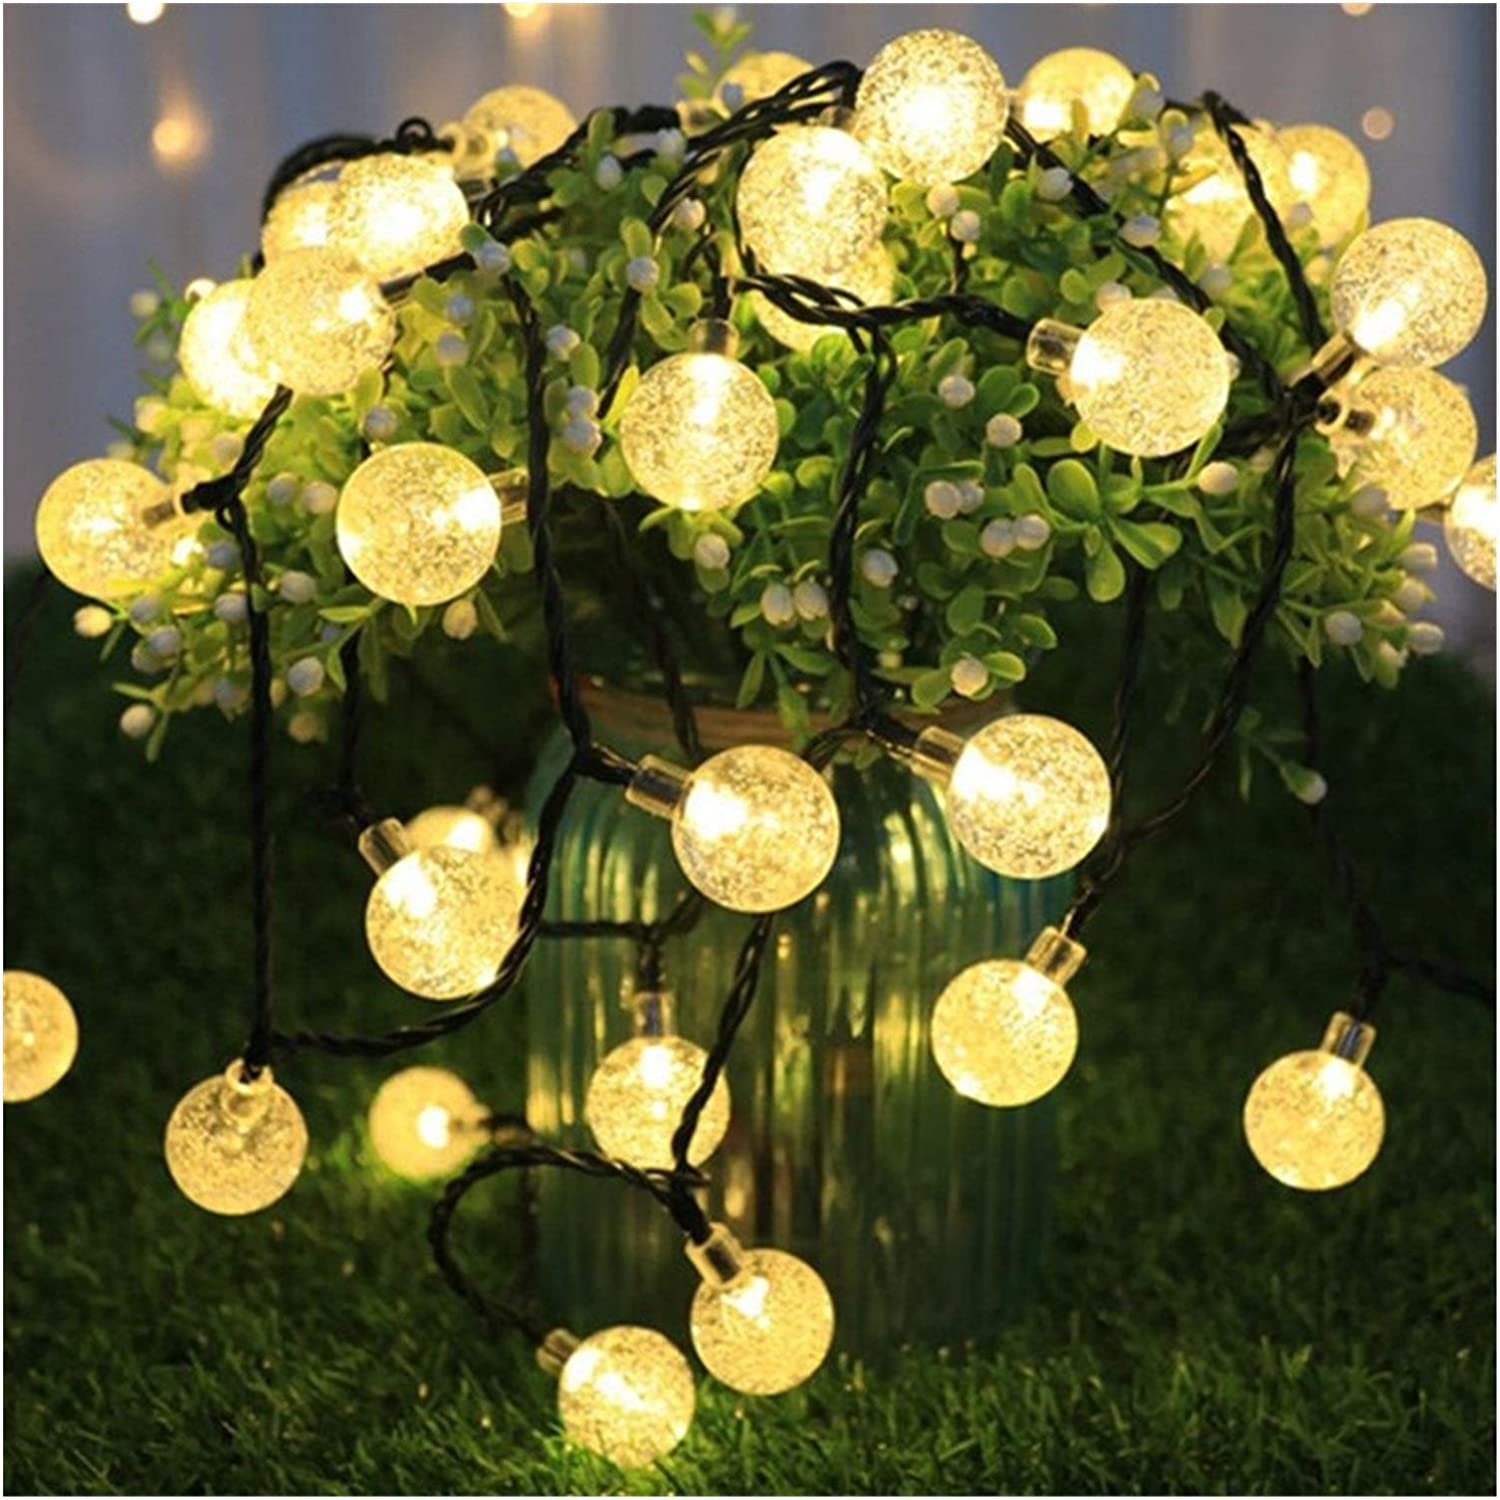 Amazon.com : Kfdzsw Christmas String Lights 5M 10M Solar Lamp Crystal Ball  Globe Waterproof LED Solar String Light Bulb Garden Christmas Decor Outdoor  Solar Light Garland : Garden & Outdoor